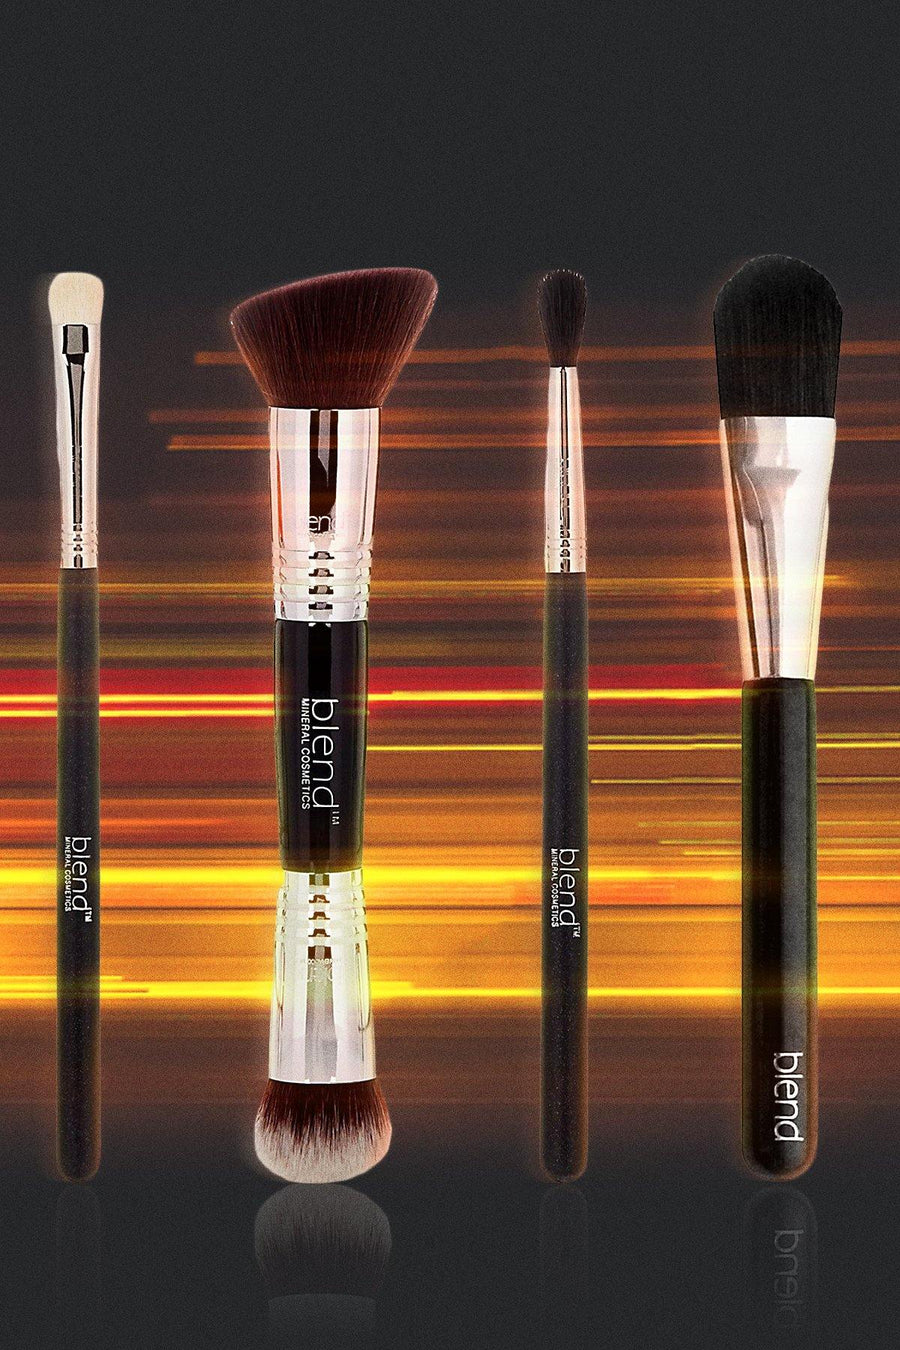 Fast & Furious Brush Bundle - Blend Mineral Cosmetics